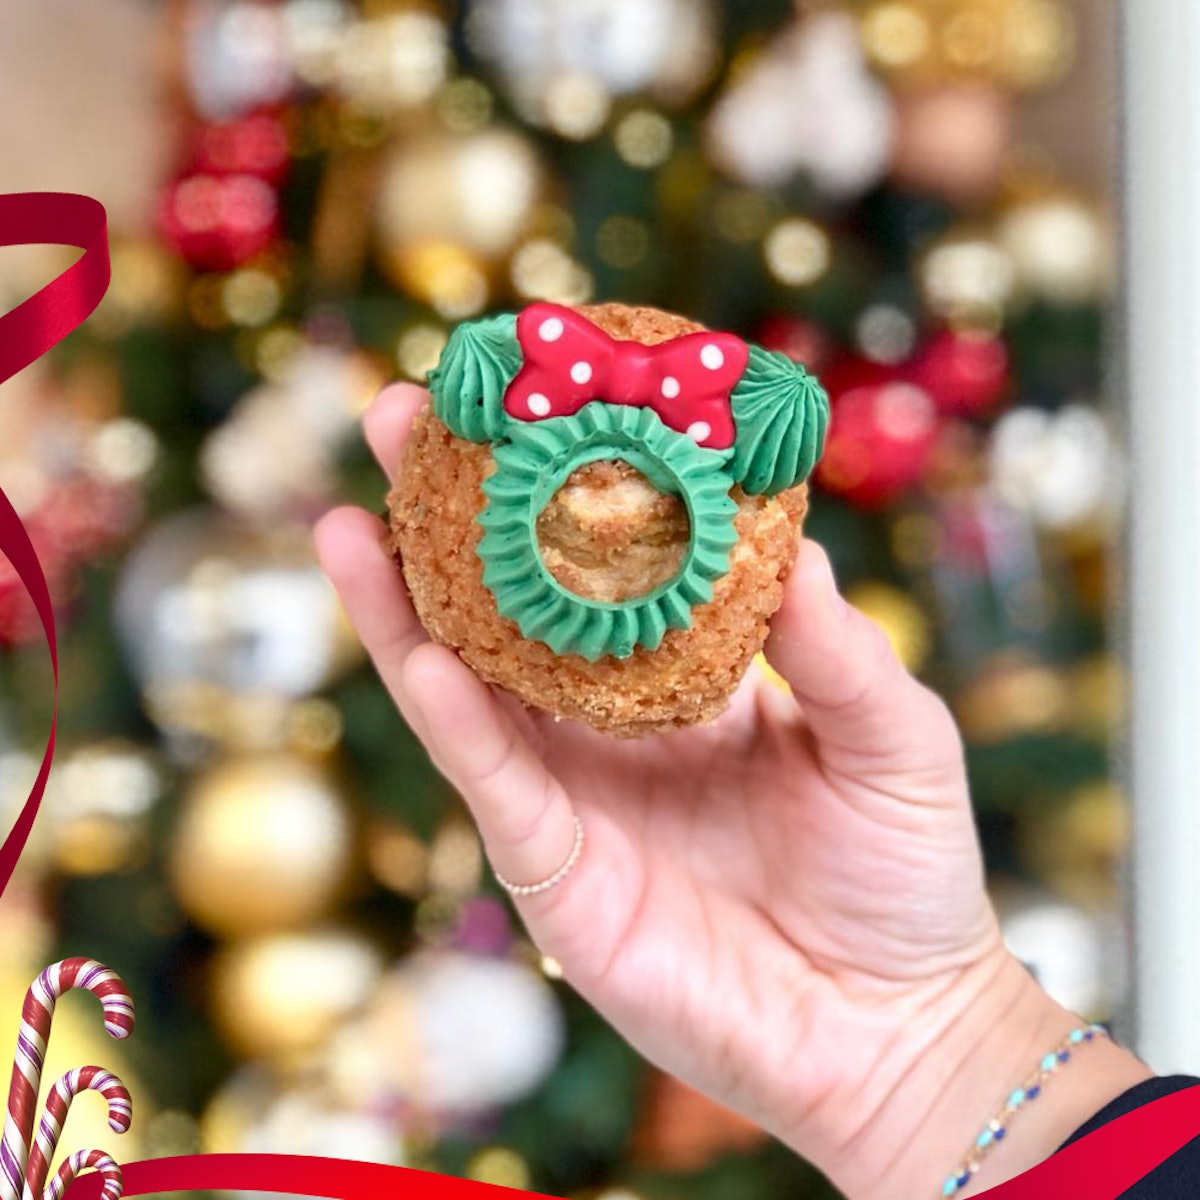 A woman holds up a Minnie's Puf Surprise holiday treat that's available at Disneyland Paris for the ...